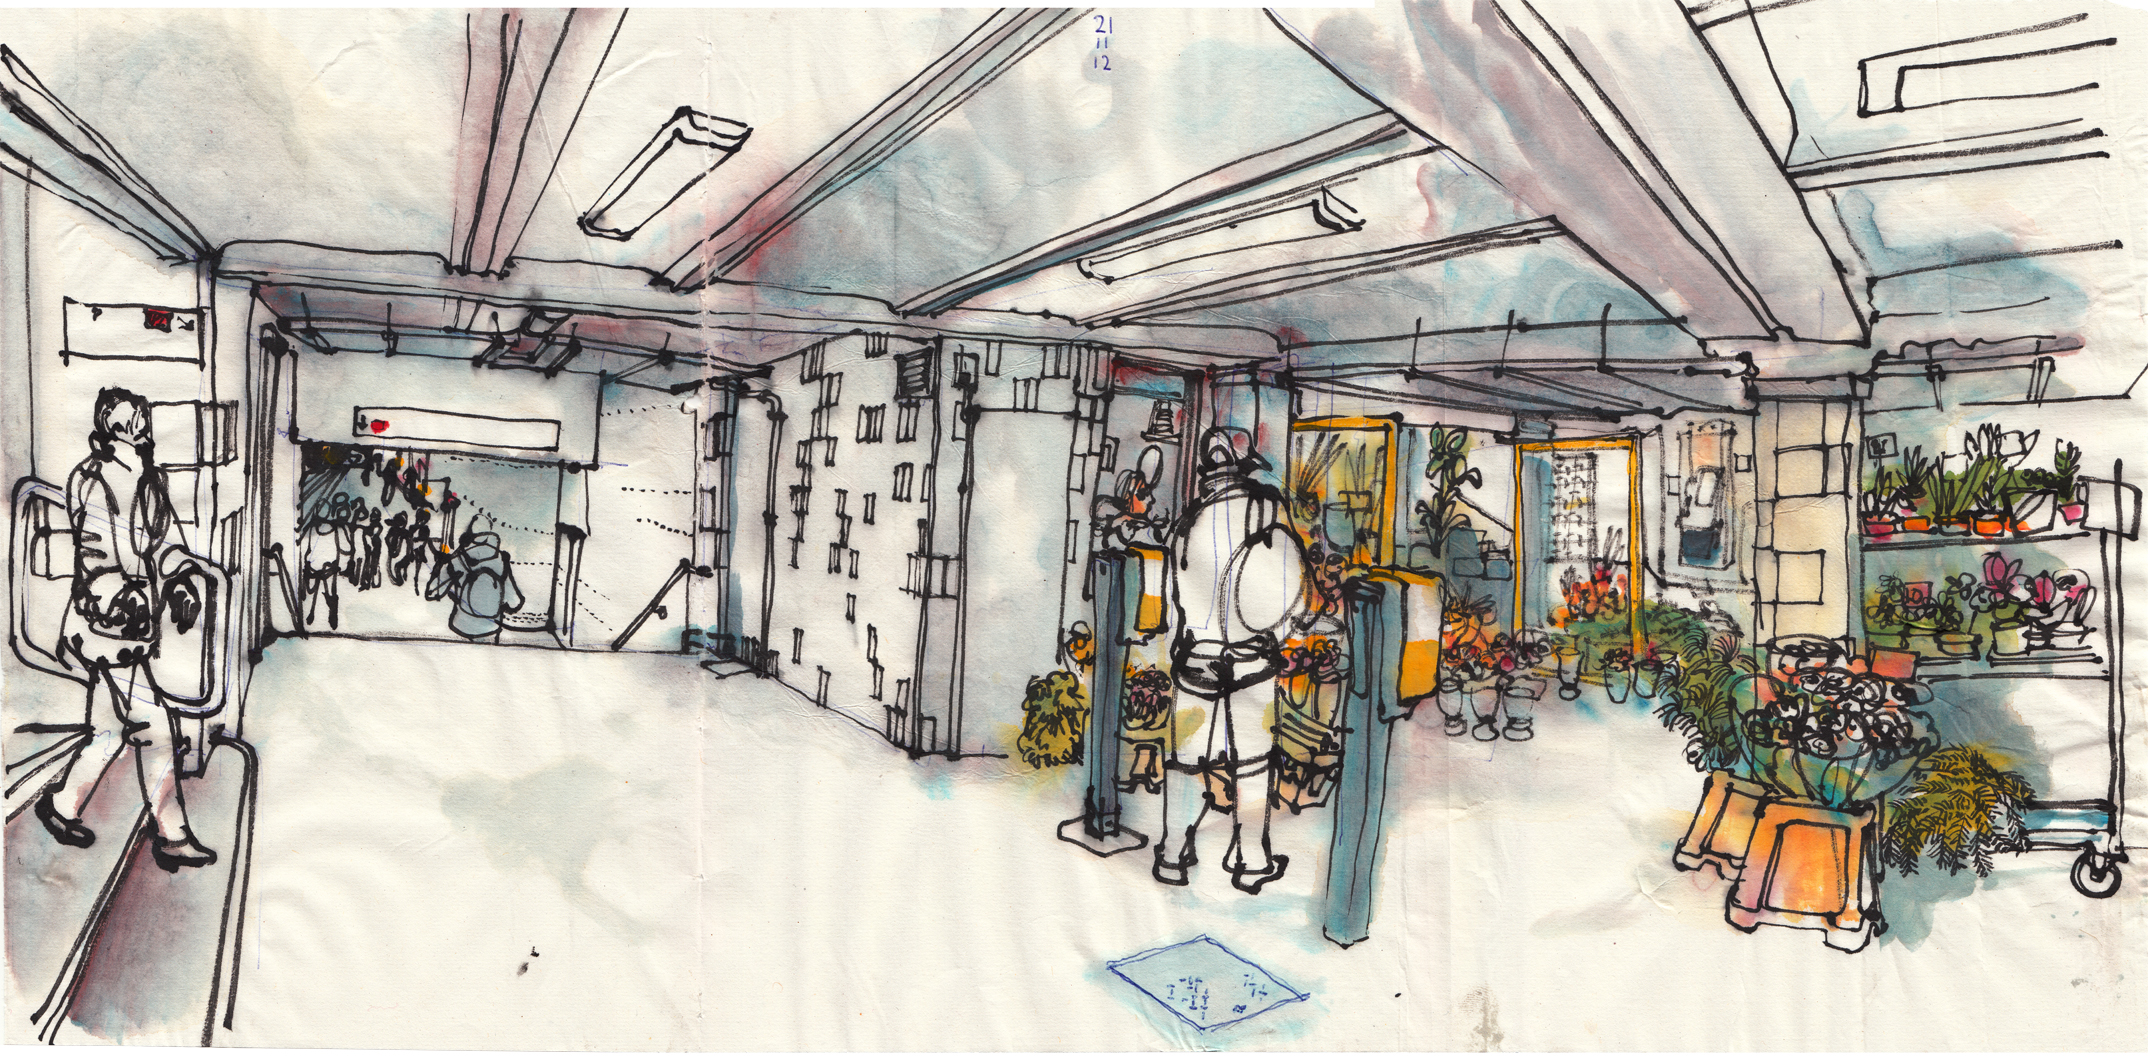 berlin.urbansketchers: November 2012.